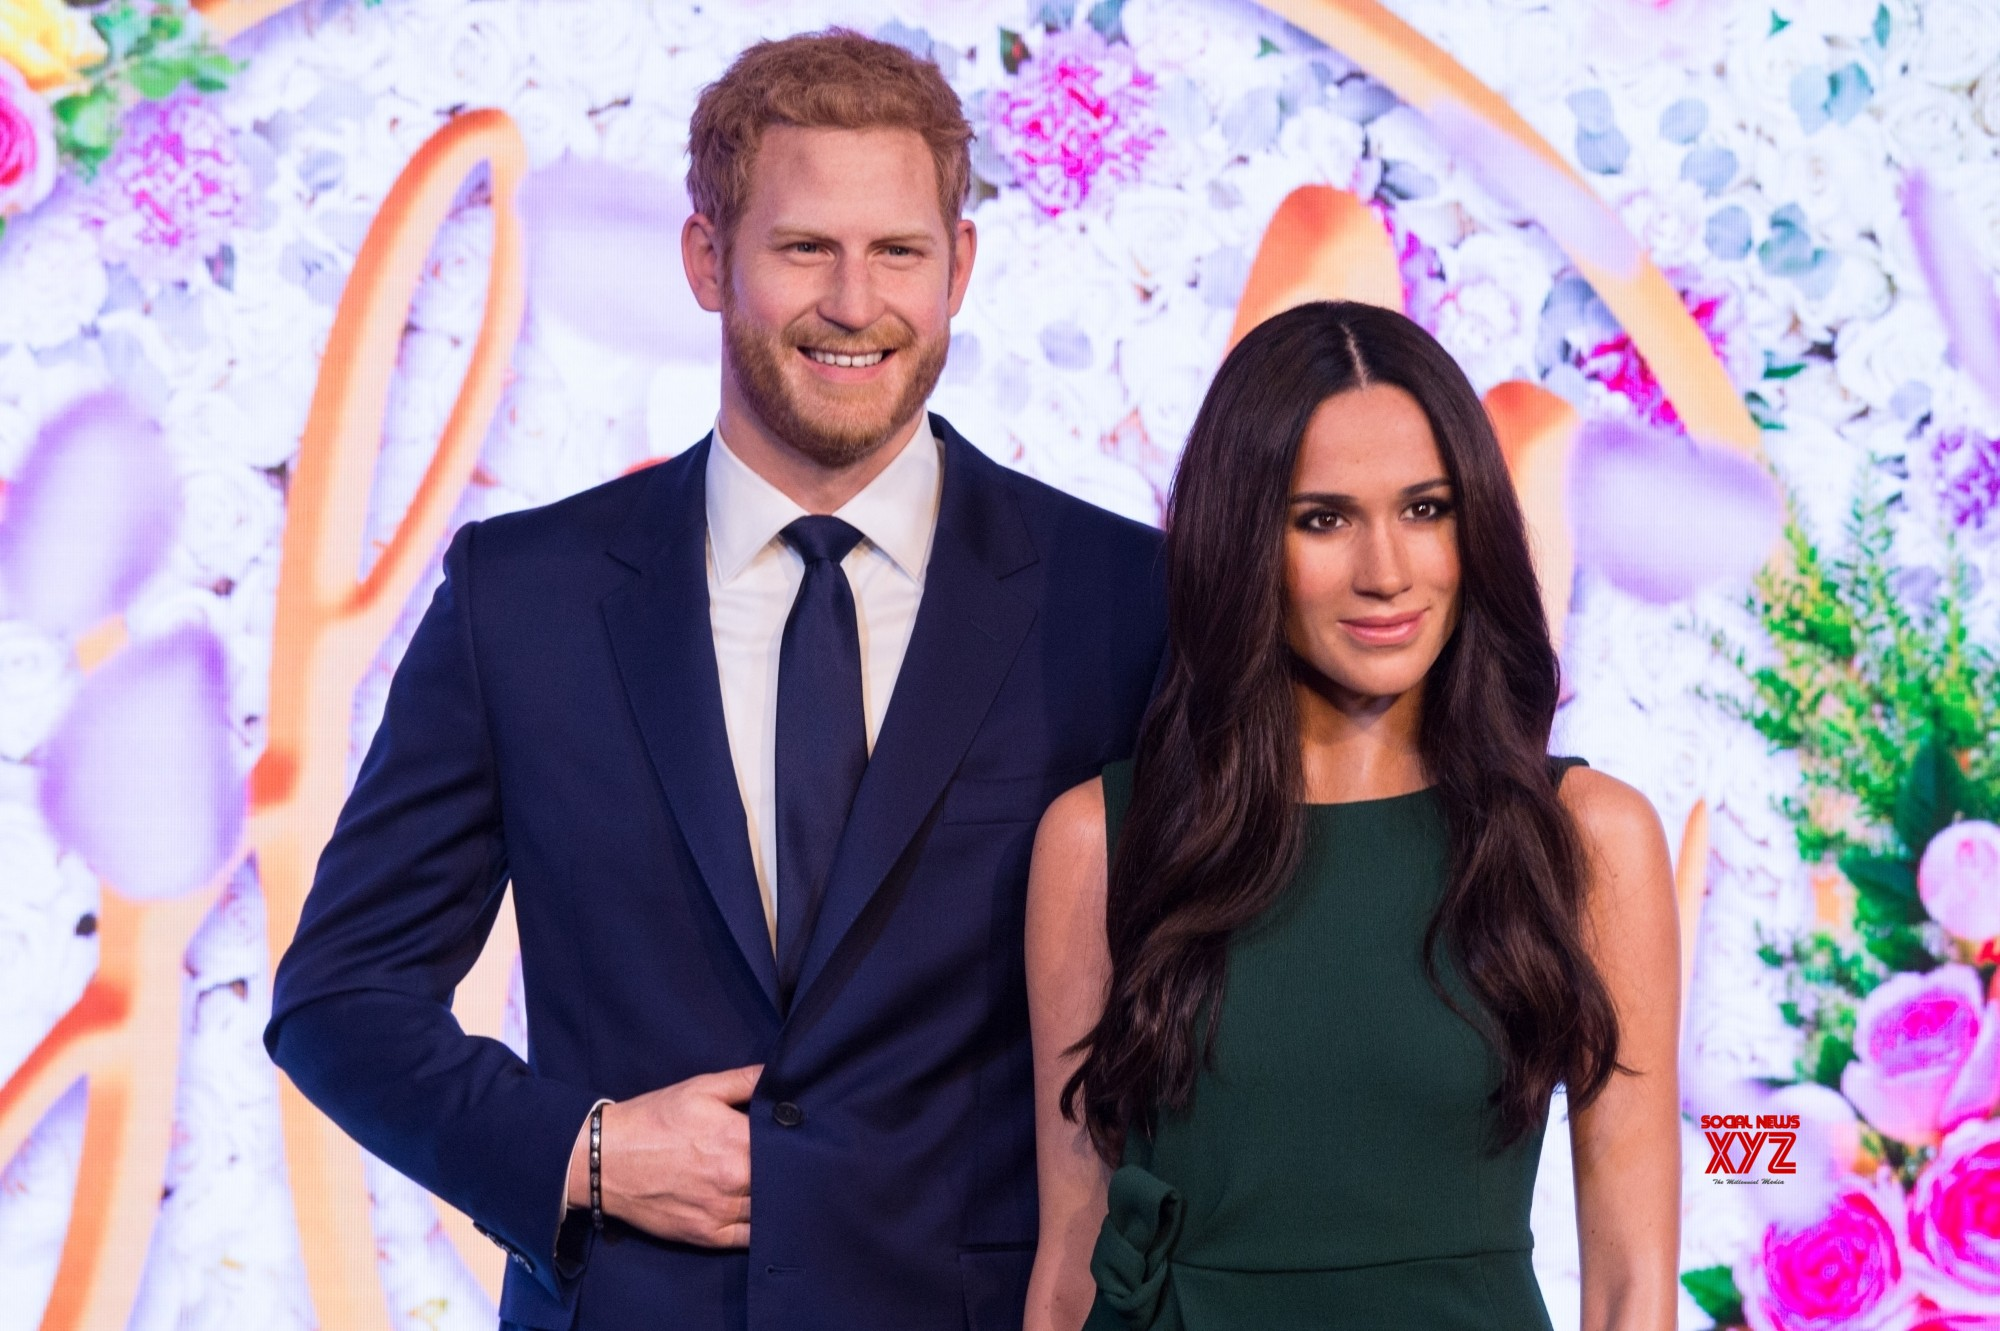 LONDON, May 9, 2018 (Xinhua) -- Photo taken on May 9, 2018 shows wax figures of Meghan Markle and Prince Harry at Madame Tussauds in London, Britain. A new wax figure of Meghan Markle was unveiled ahead of her wedding to Prince Harry on May 19 at Madame Tussauds London on Wednesday. (Xinhua/Ray Tang/IANS)